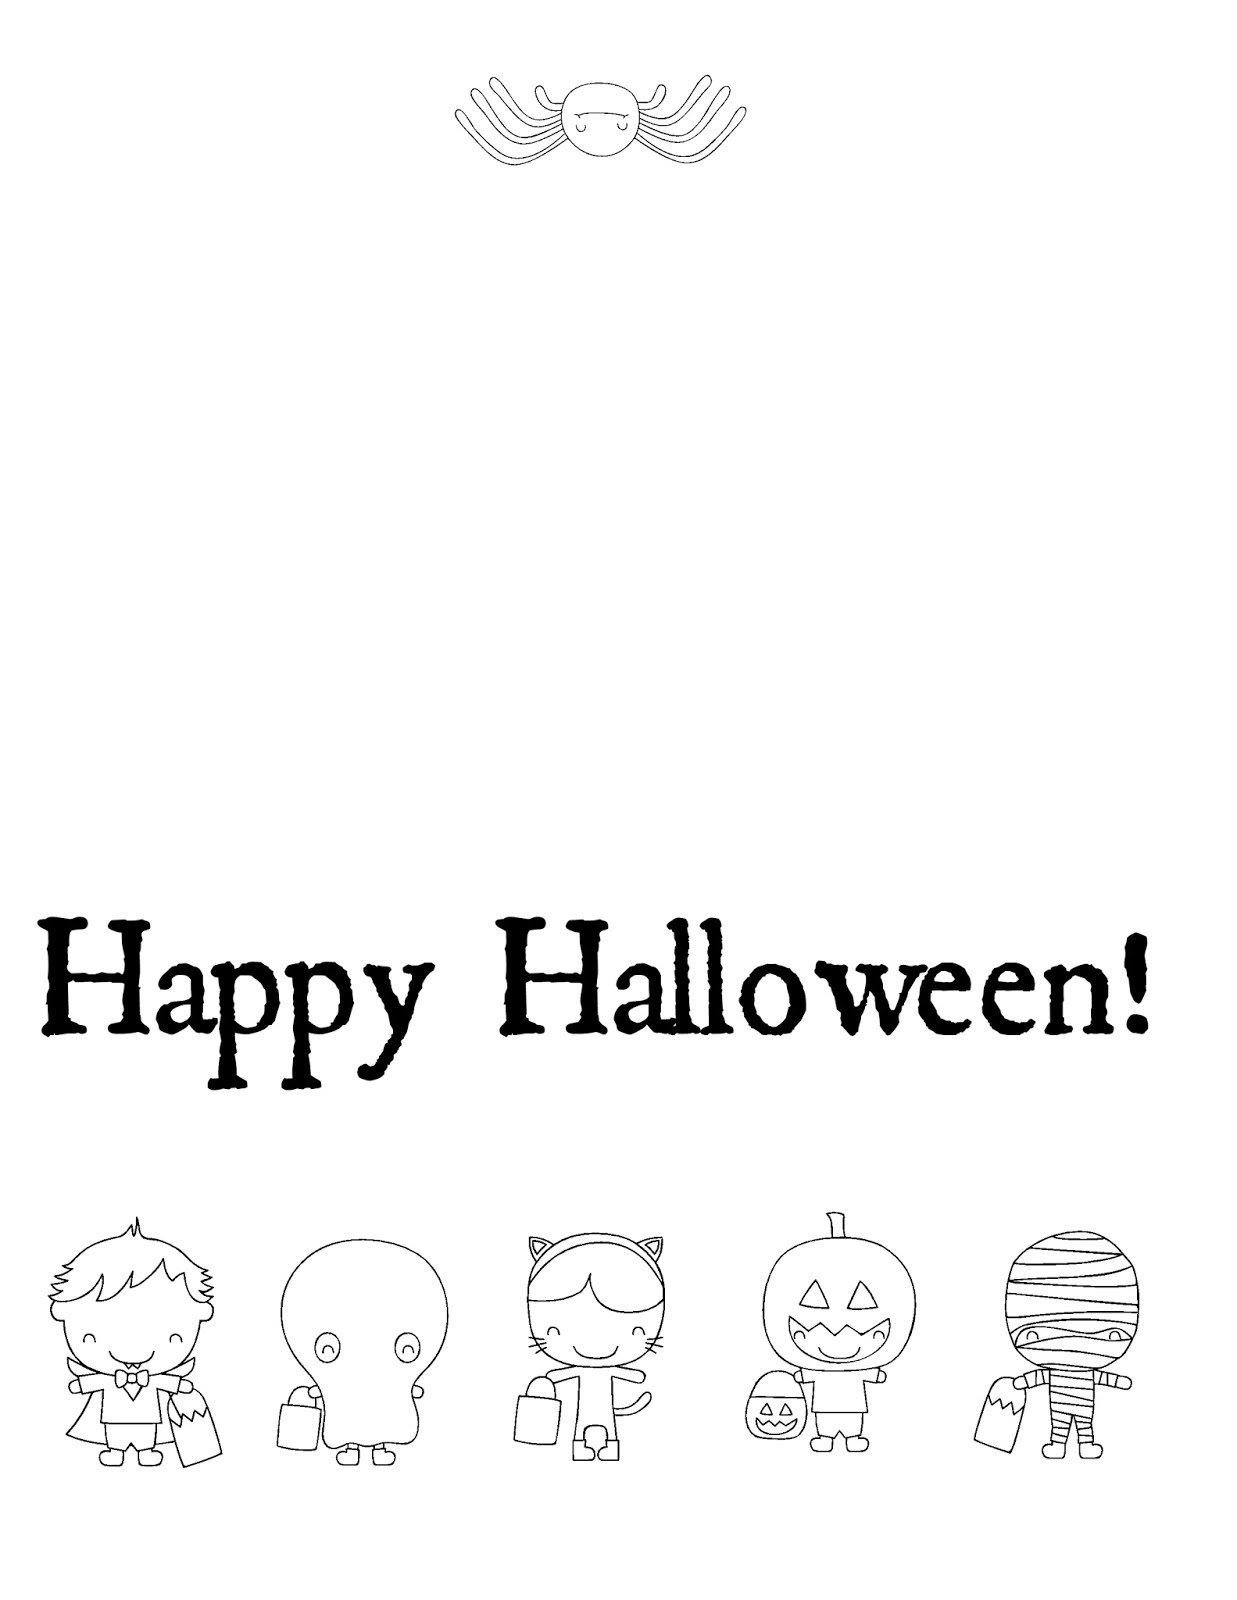 Musings Of An Average Mom: Free Halloween Cards To Color - Printable Halloween Cards To Color For Free